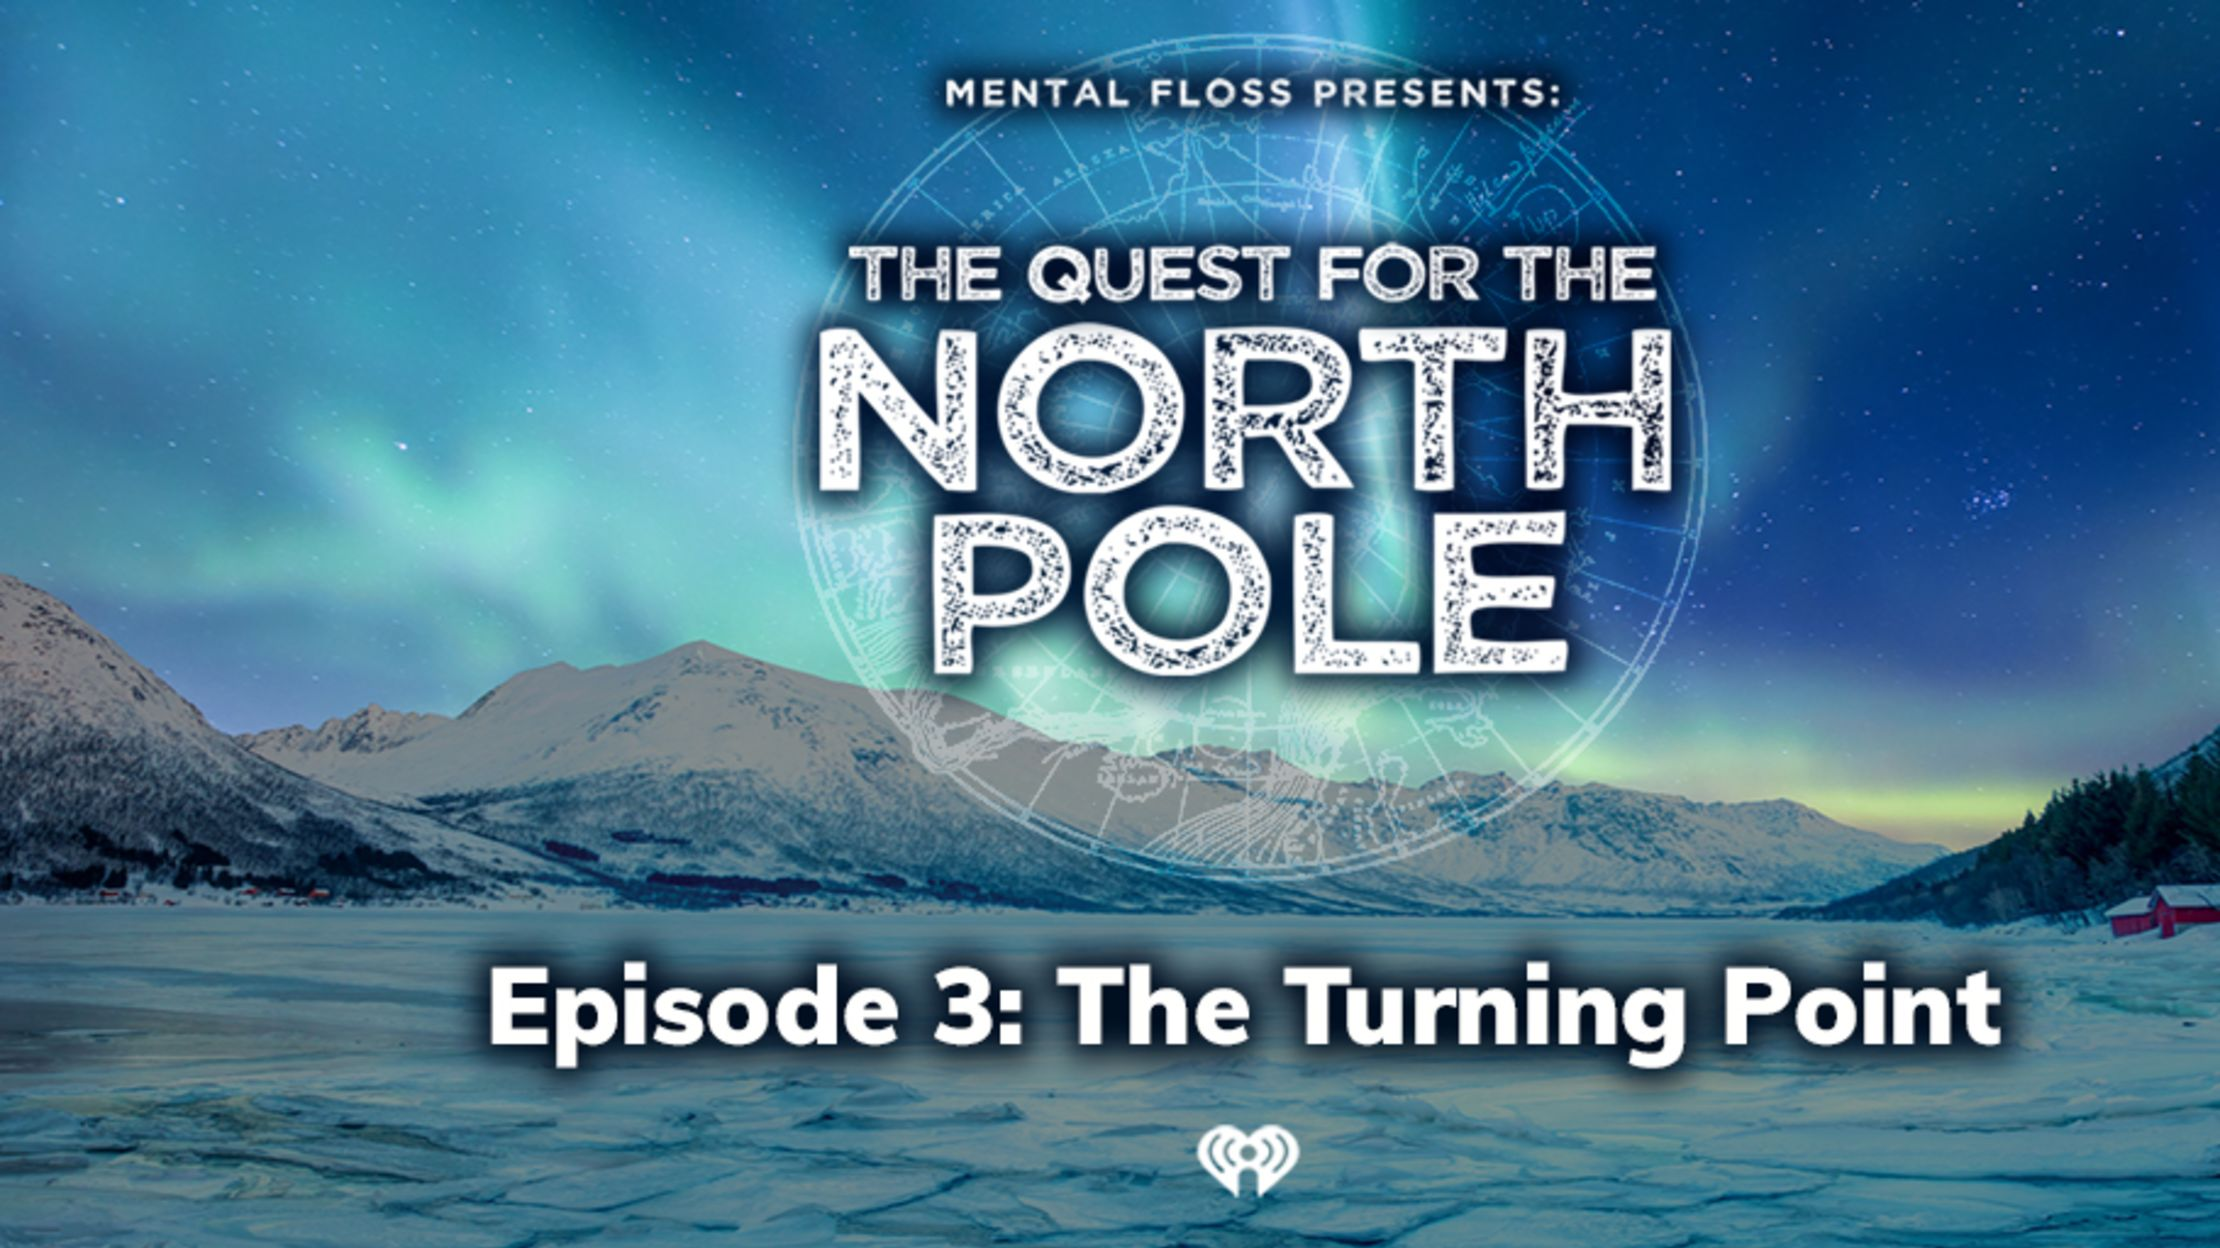 The Quest for the North Pole, Episode 3: The Turning Point